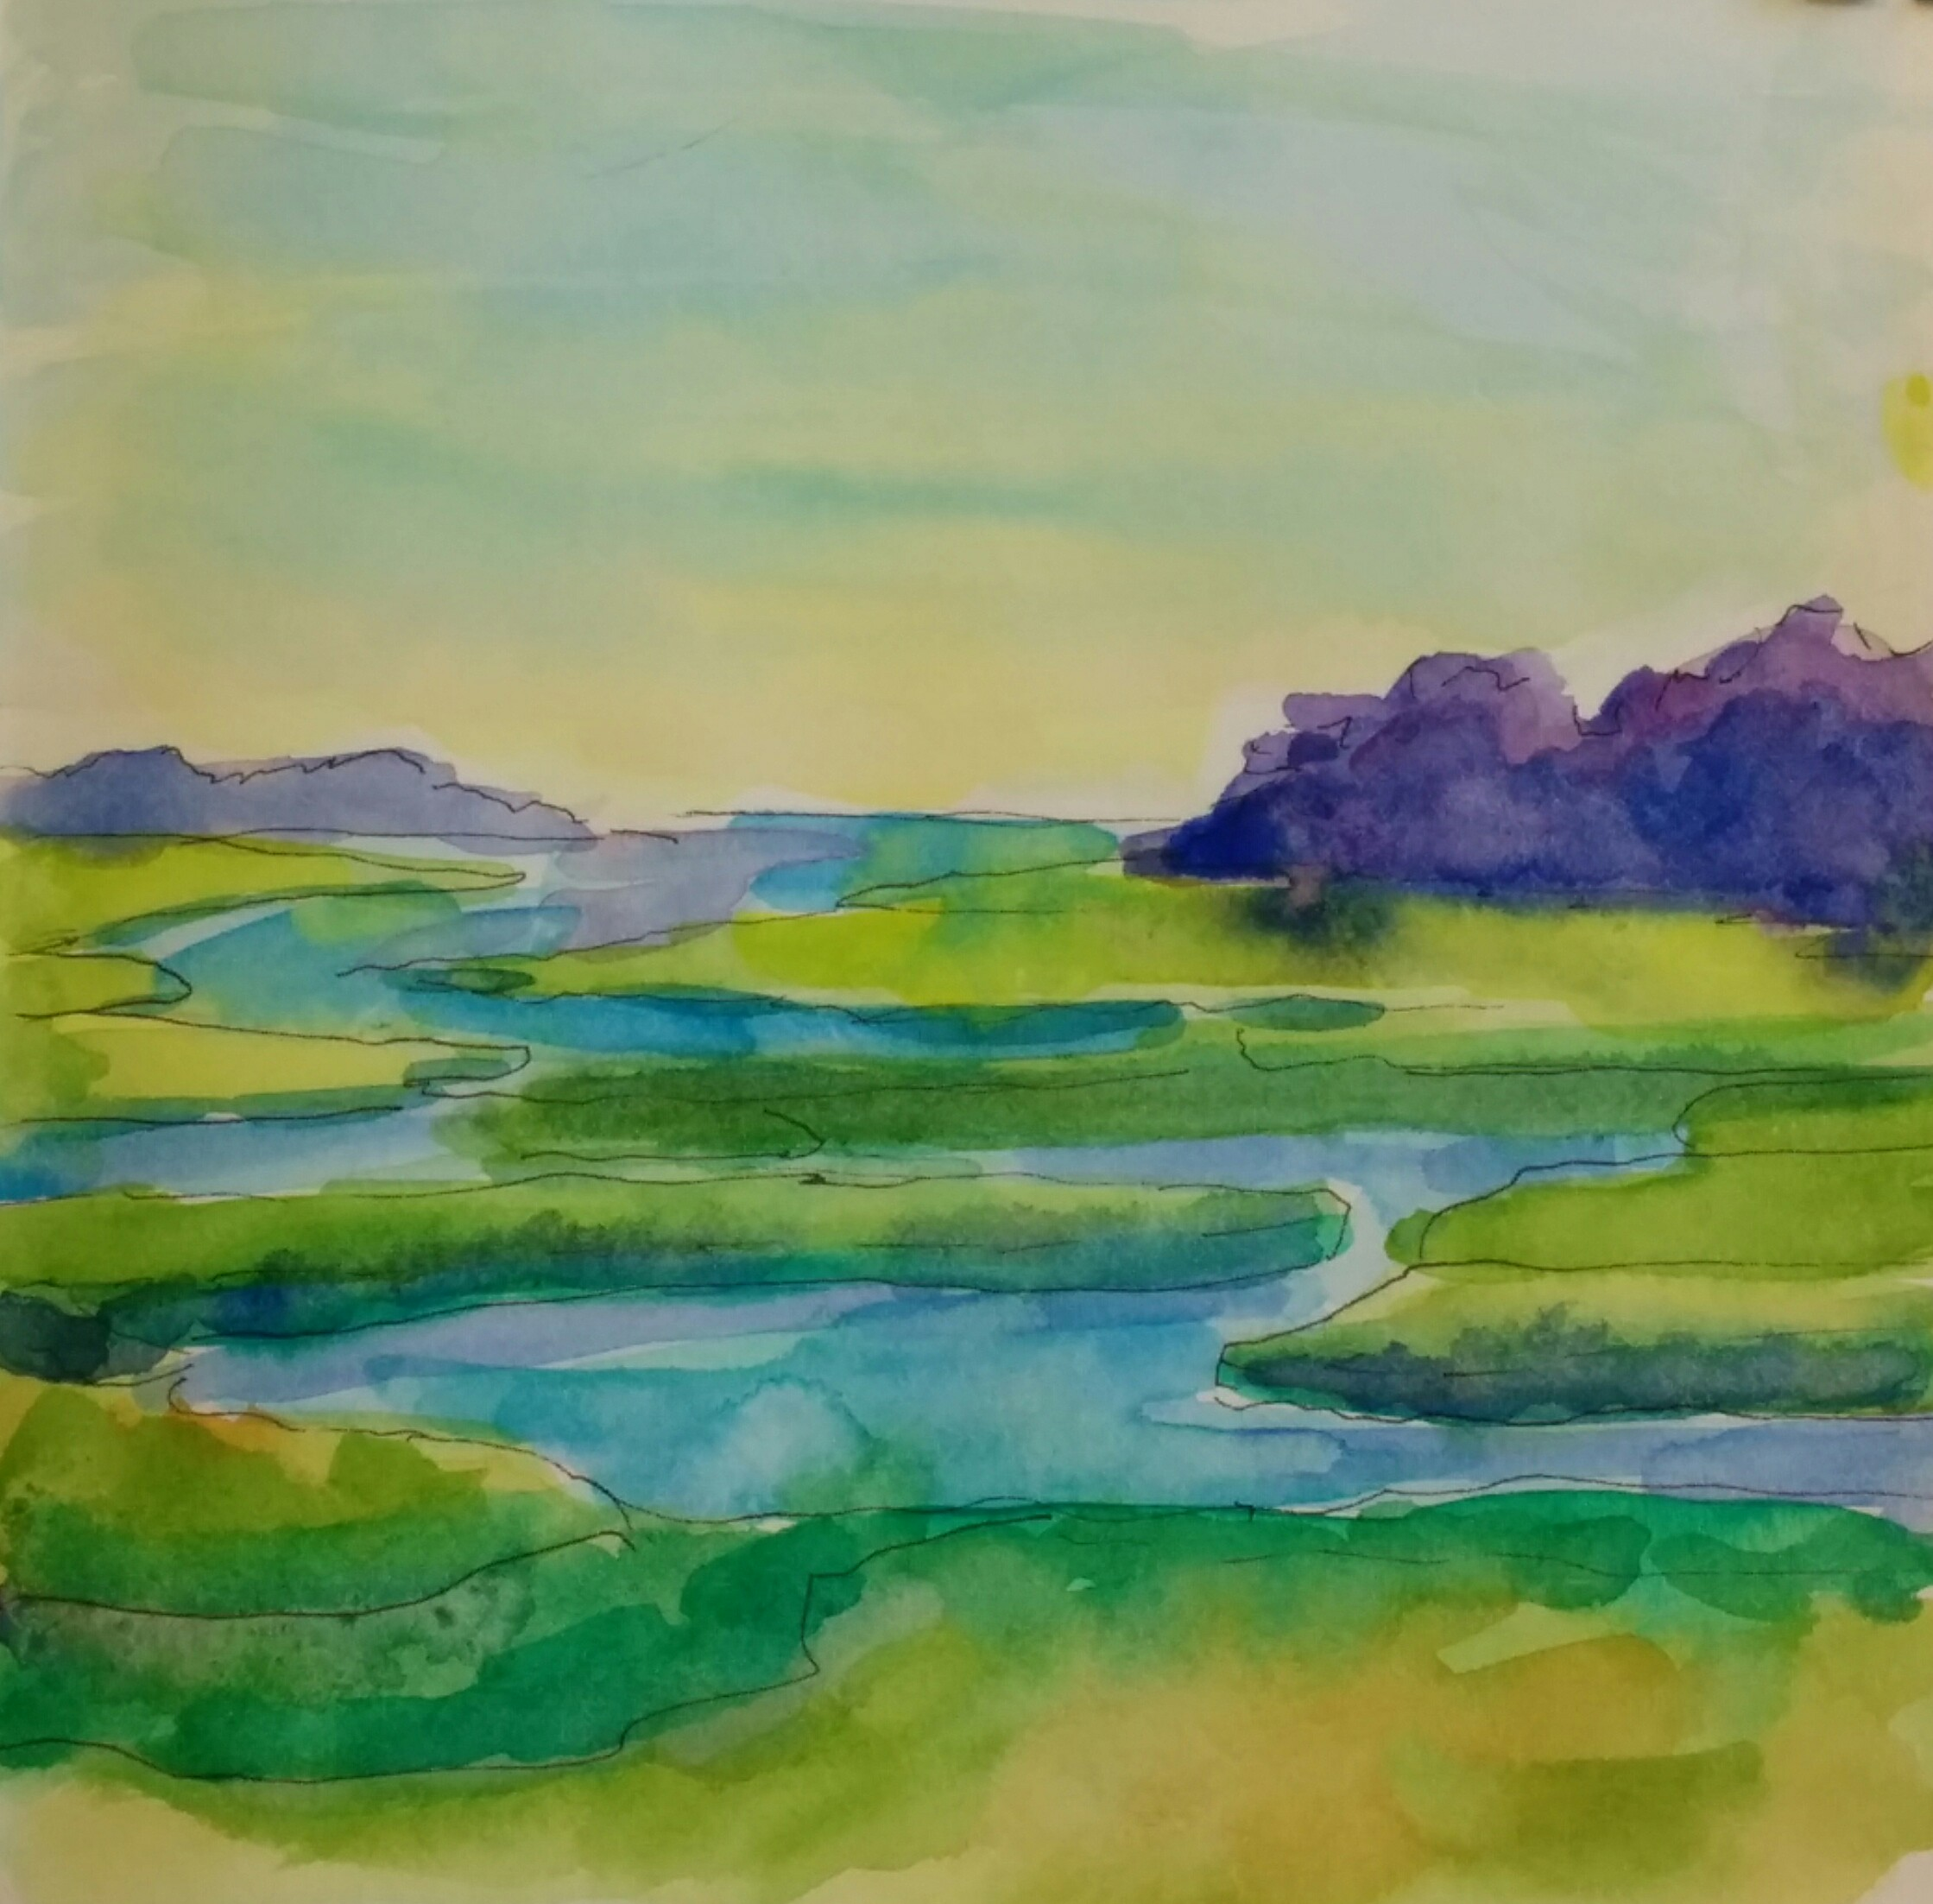 """Blackcreek Marsh"" by Ann McCann 5.5 X 5.5"" Watercolor (c) 2017"